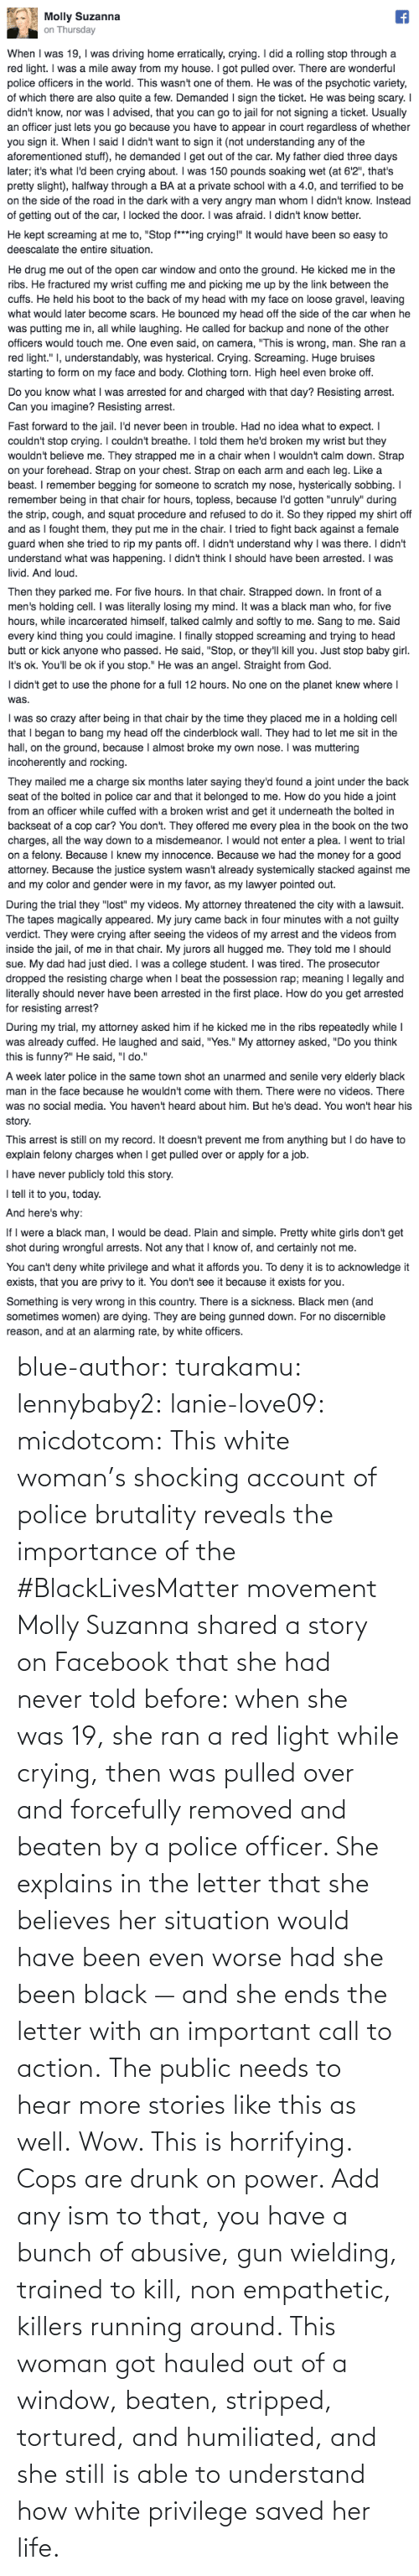 Wow: blue-author: turakamu:  lennybaby2:  lanie-love09:  micdotcom:  This white woman's shocking account of police brutality reveals the importance of the #BlackLivesMatter movement Molly Suzanna shared a story on Facebook that she had never told before: when she was 19, she ran a red light while crying, then was pulled over and forcefully removed and beaten by a police officer. She explains in the letter that she believes her situation would have been even worse had she been black — and she ends the letter with an important call to action.  The public needs to hear more stories like this as well.  Wow. This is horrifying.  Cops are drunk on power. Add any ism to that, you have a bunch of abusive, gun wielding, trained to kill, non empathetic, killers running around.    This woman got hauled out of a window, beaten, stripped, tortured, and humiliated, and she still is able to understand how white privilege saved her life.